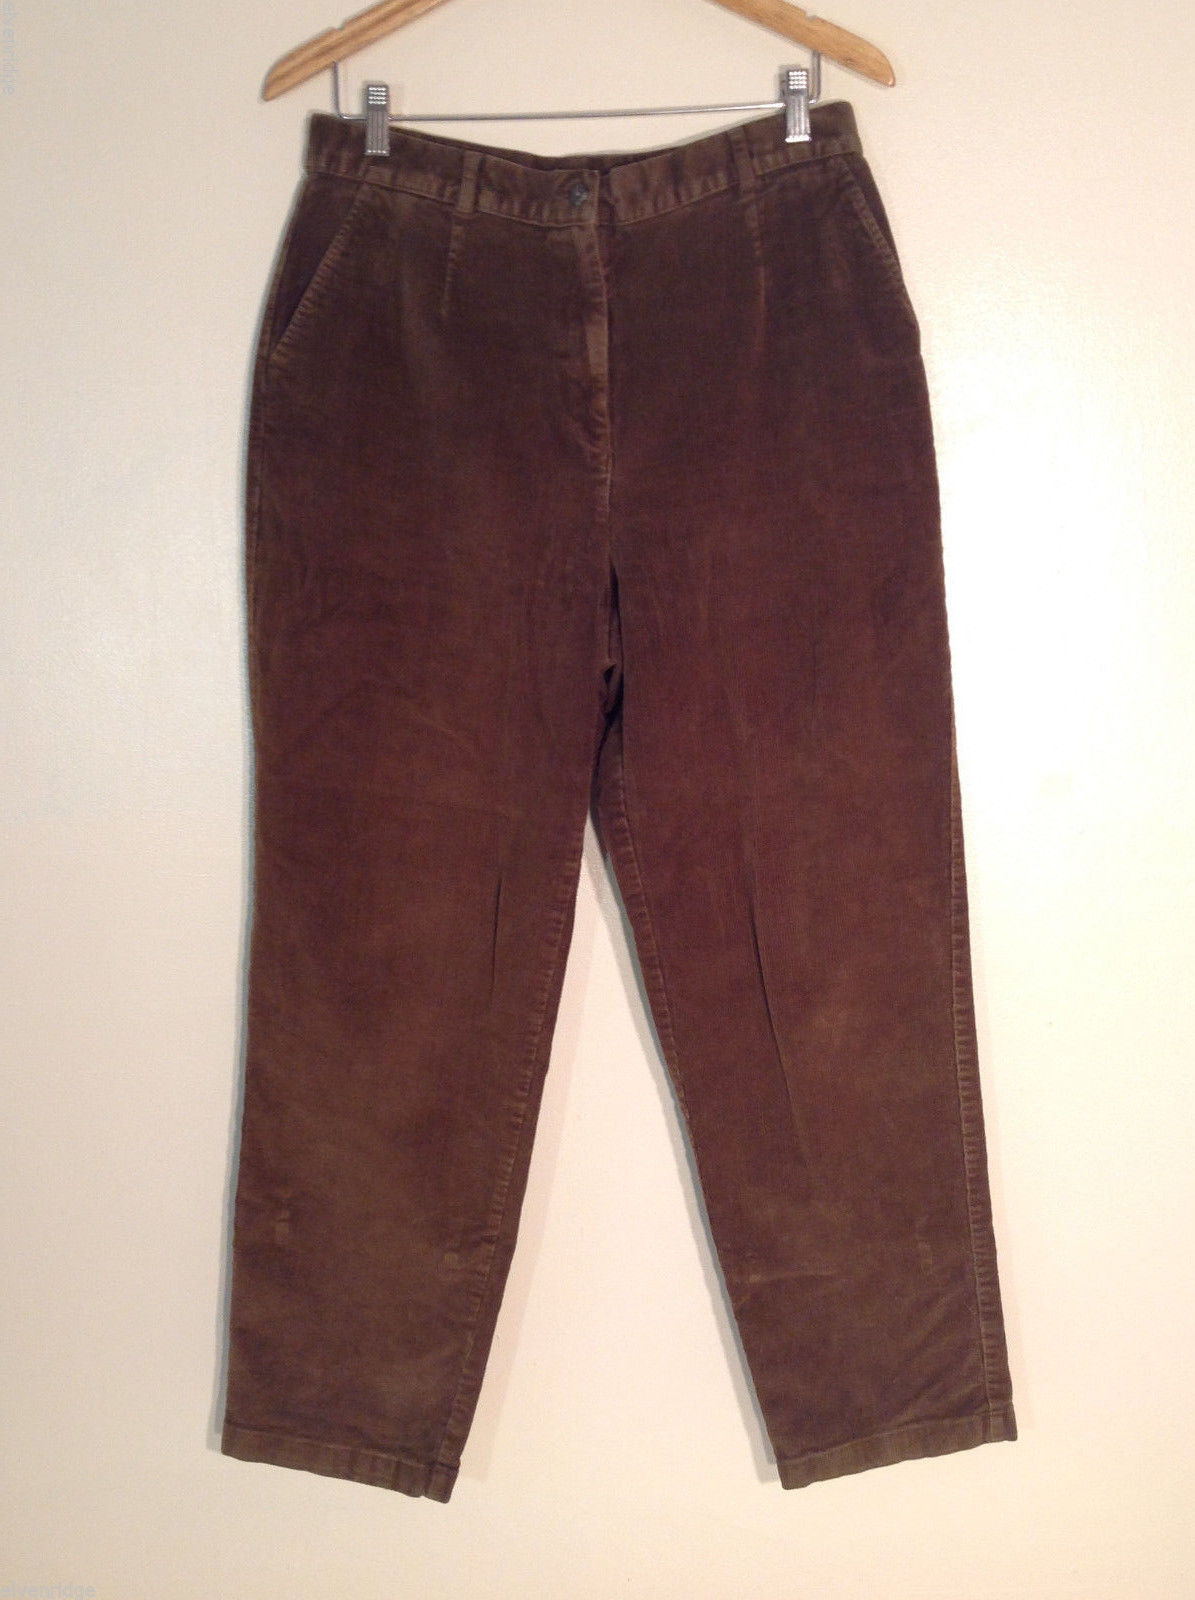 "L.L. Bean Women's Size M 14 Pants Casual Corduroy Chestnut Brown 30"" Tall Inseam"